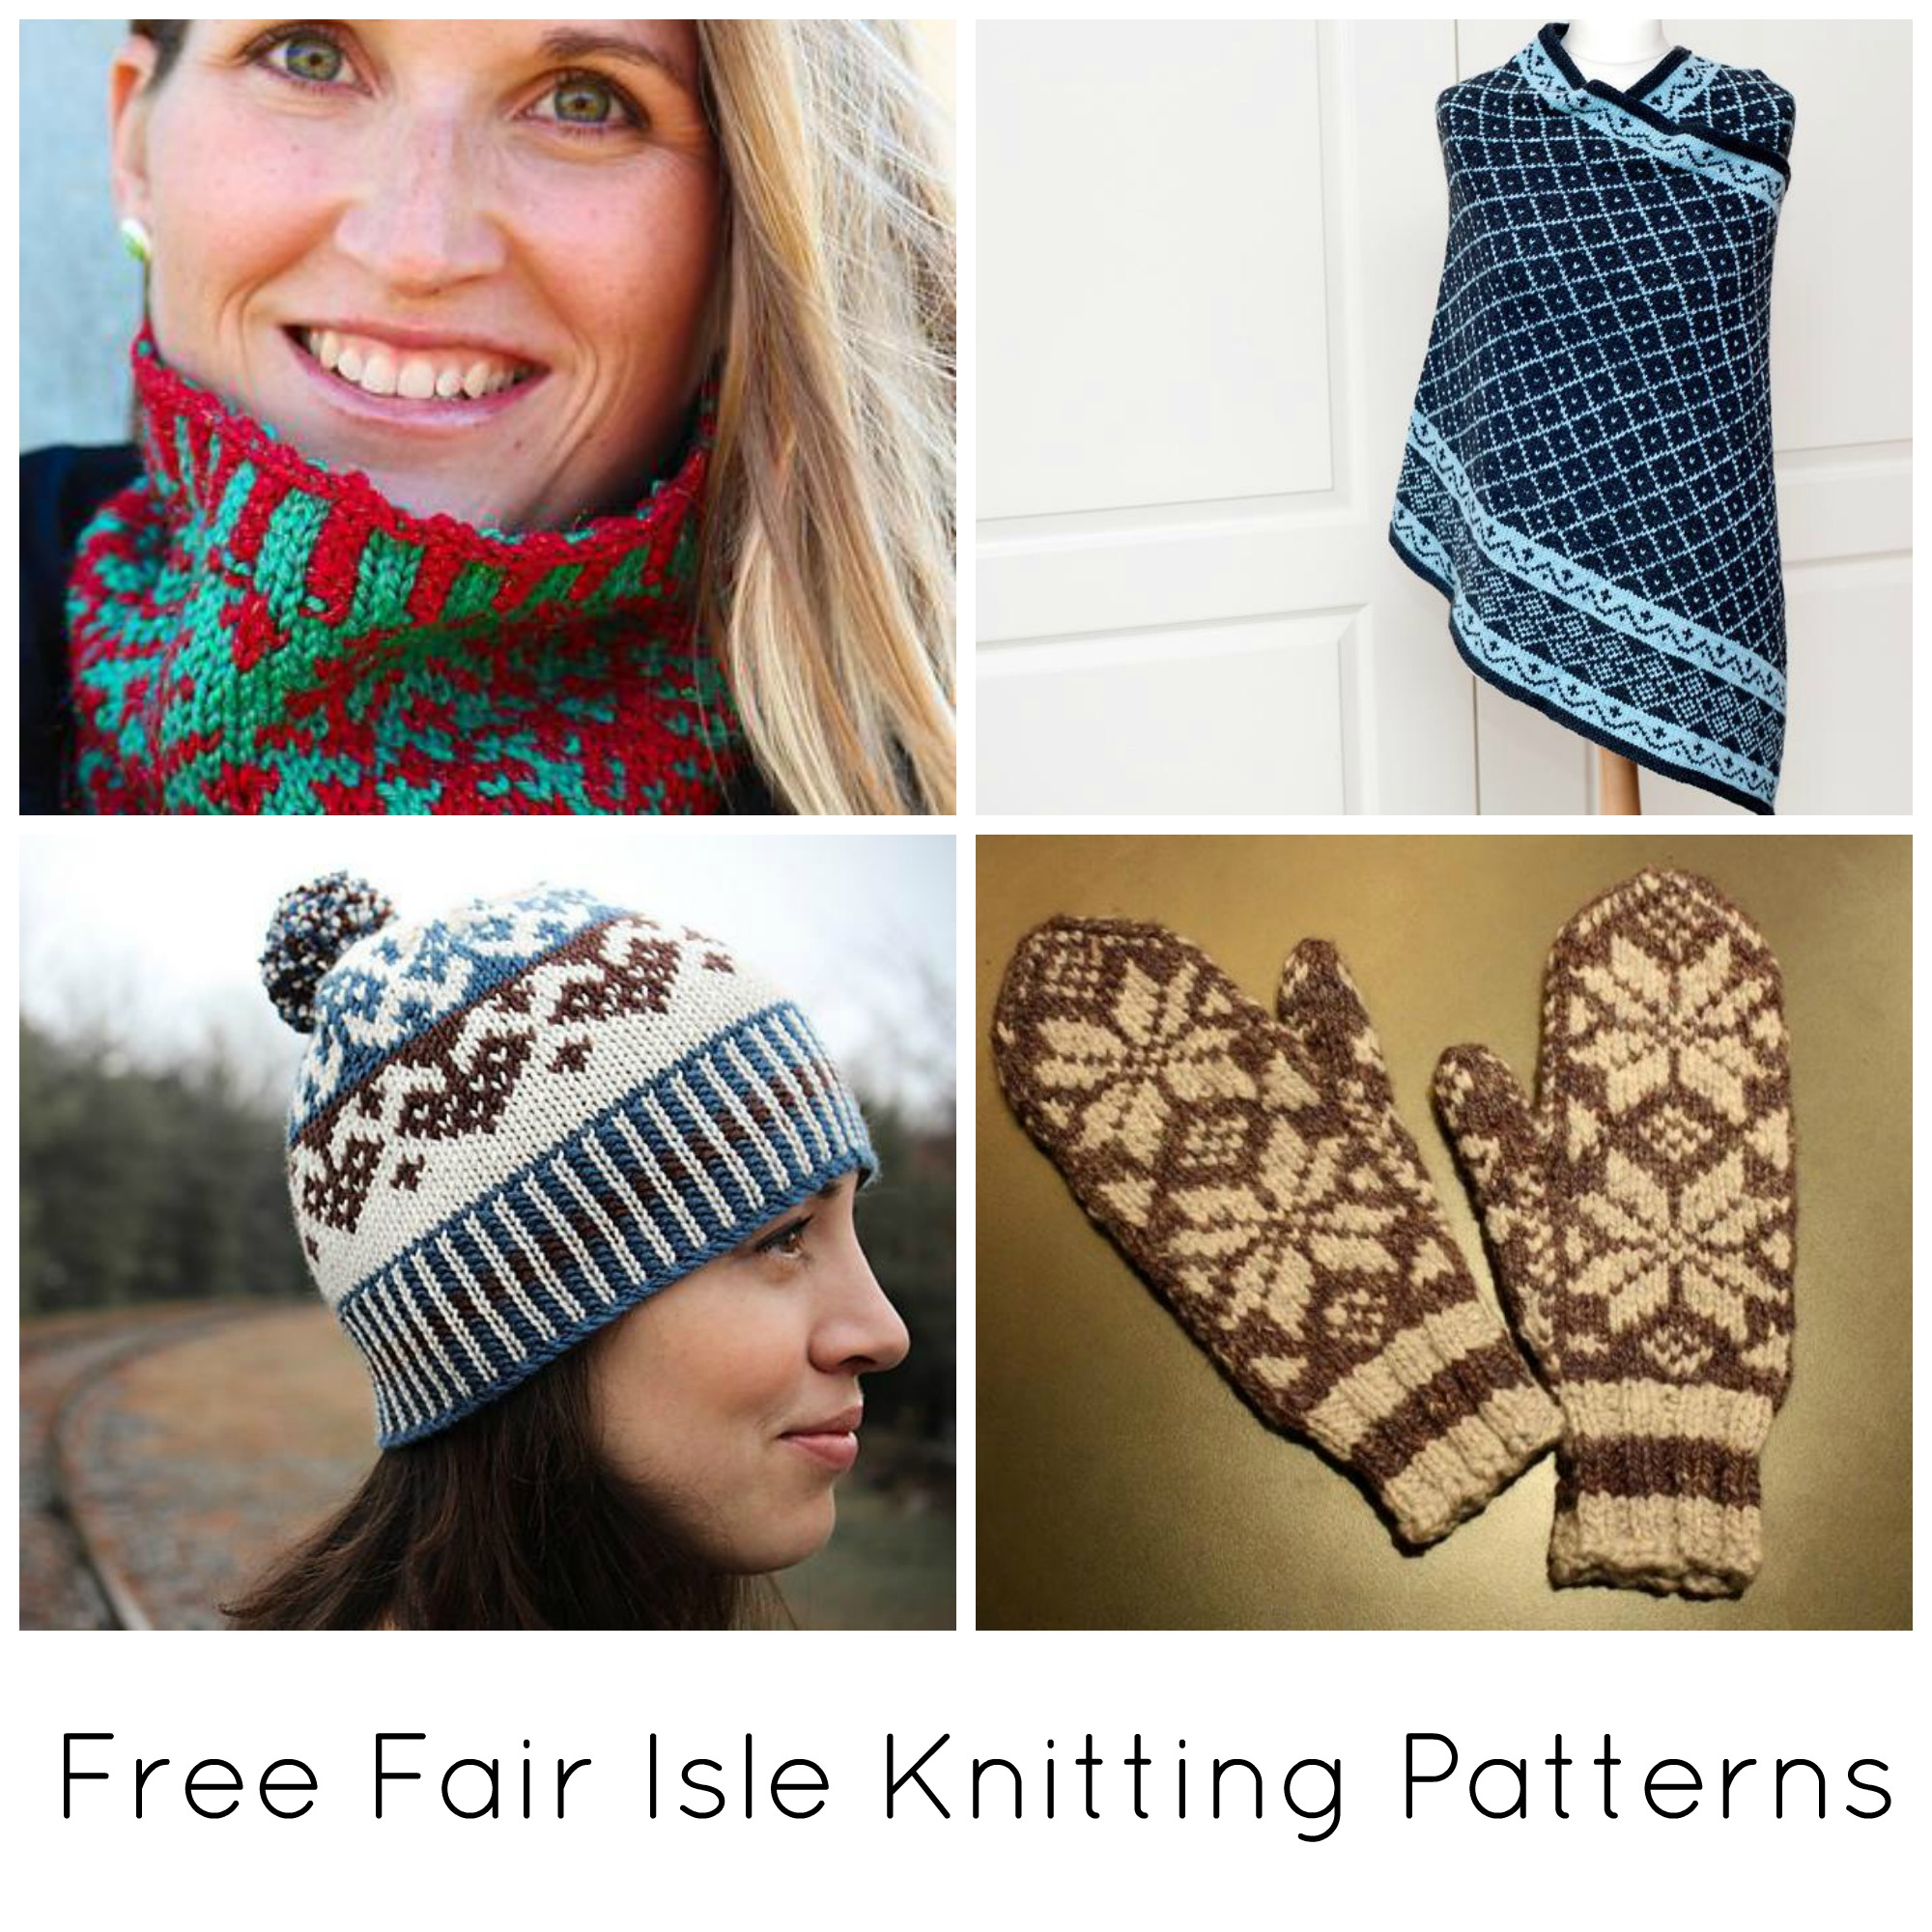 Fairisle Knitting Patterns Free 10 Free Fair Isle Knitting Patterns On Craftsy